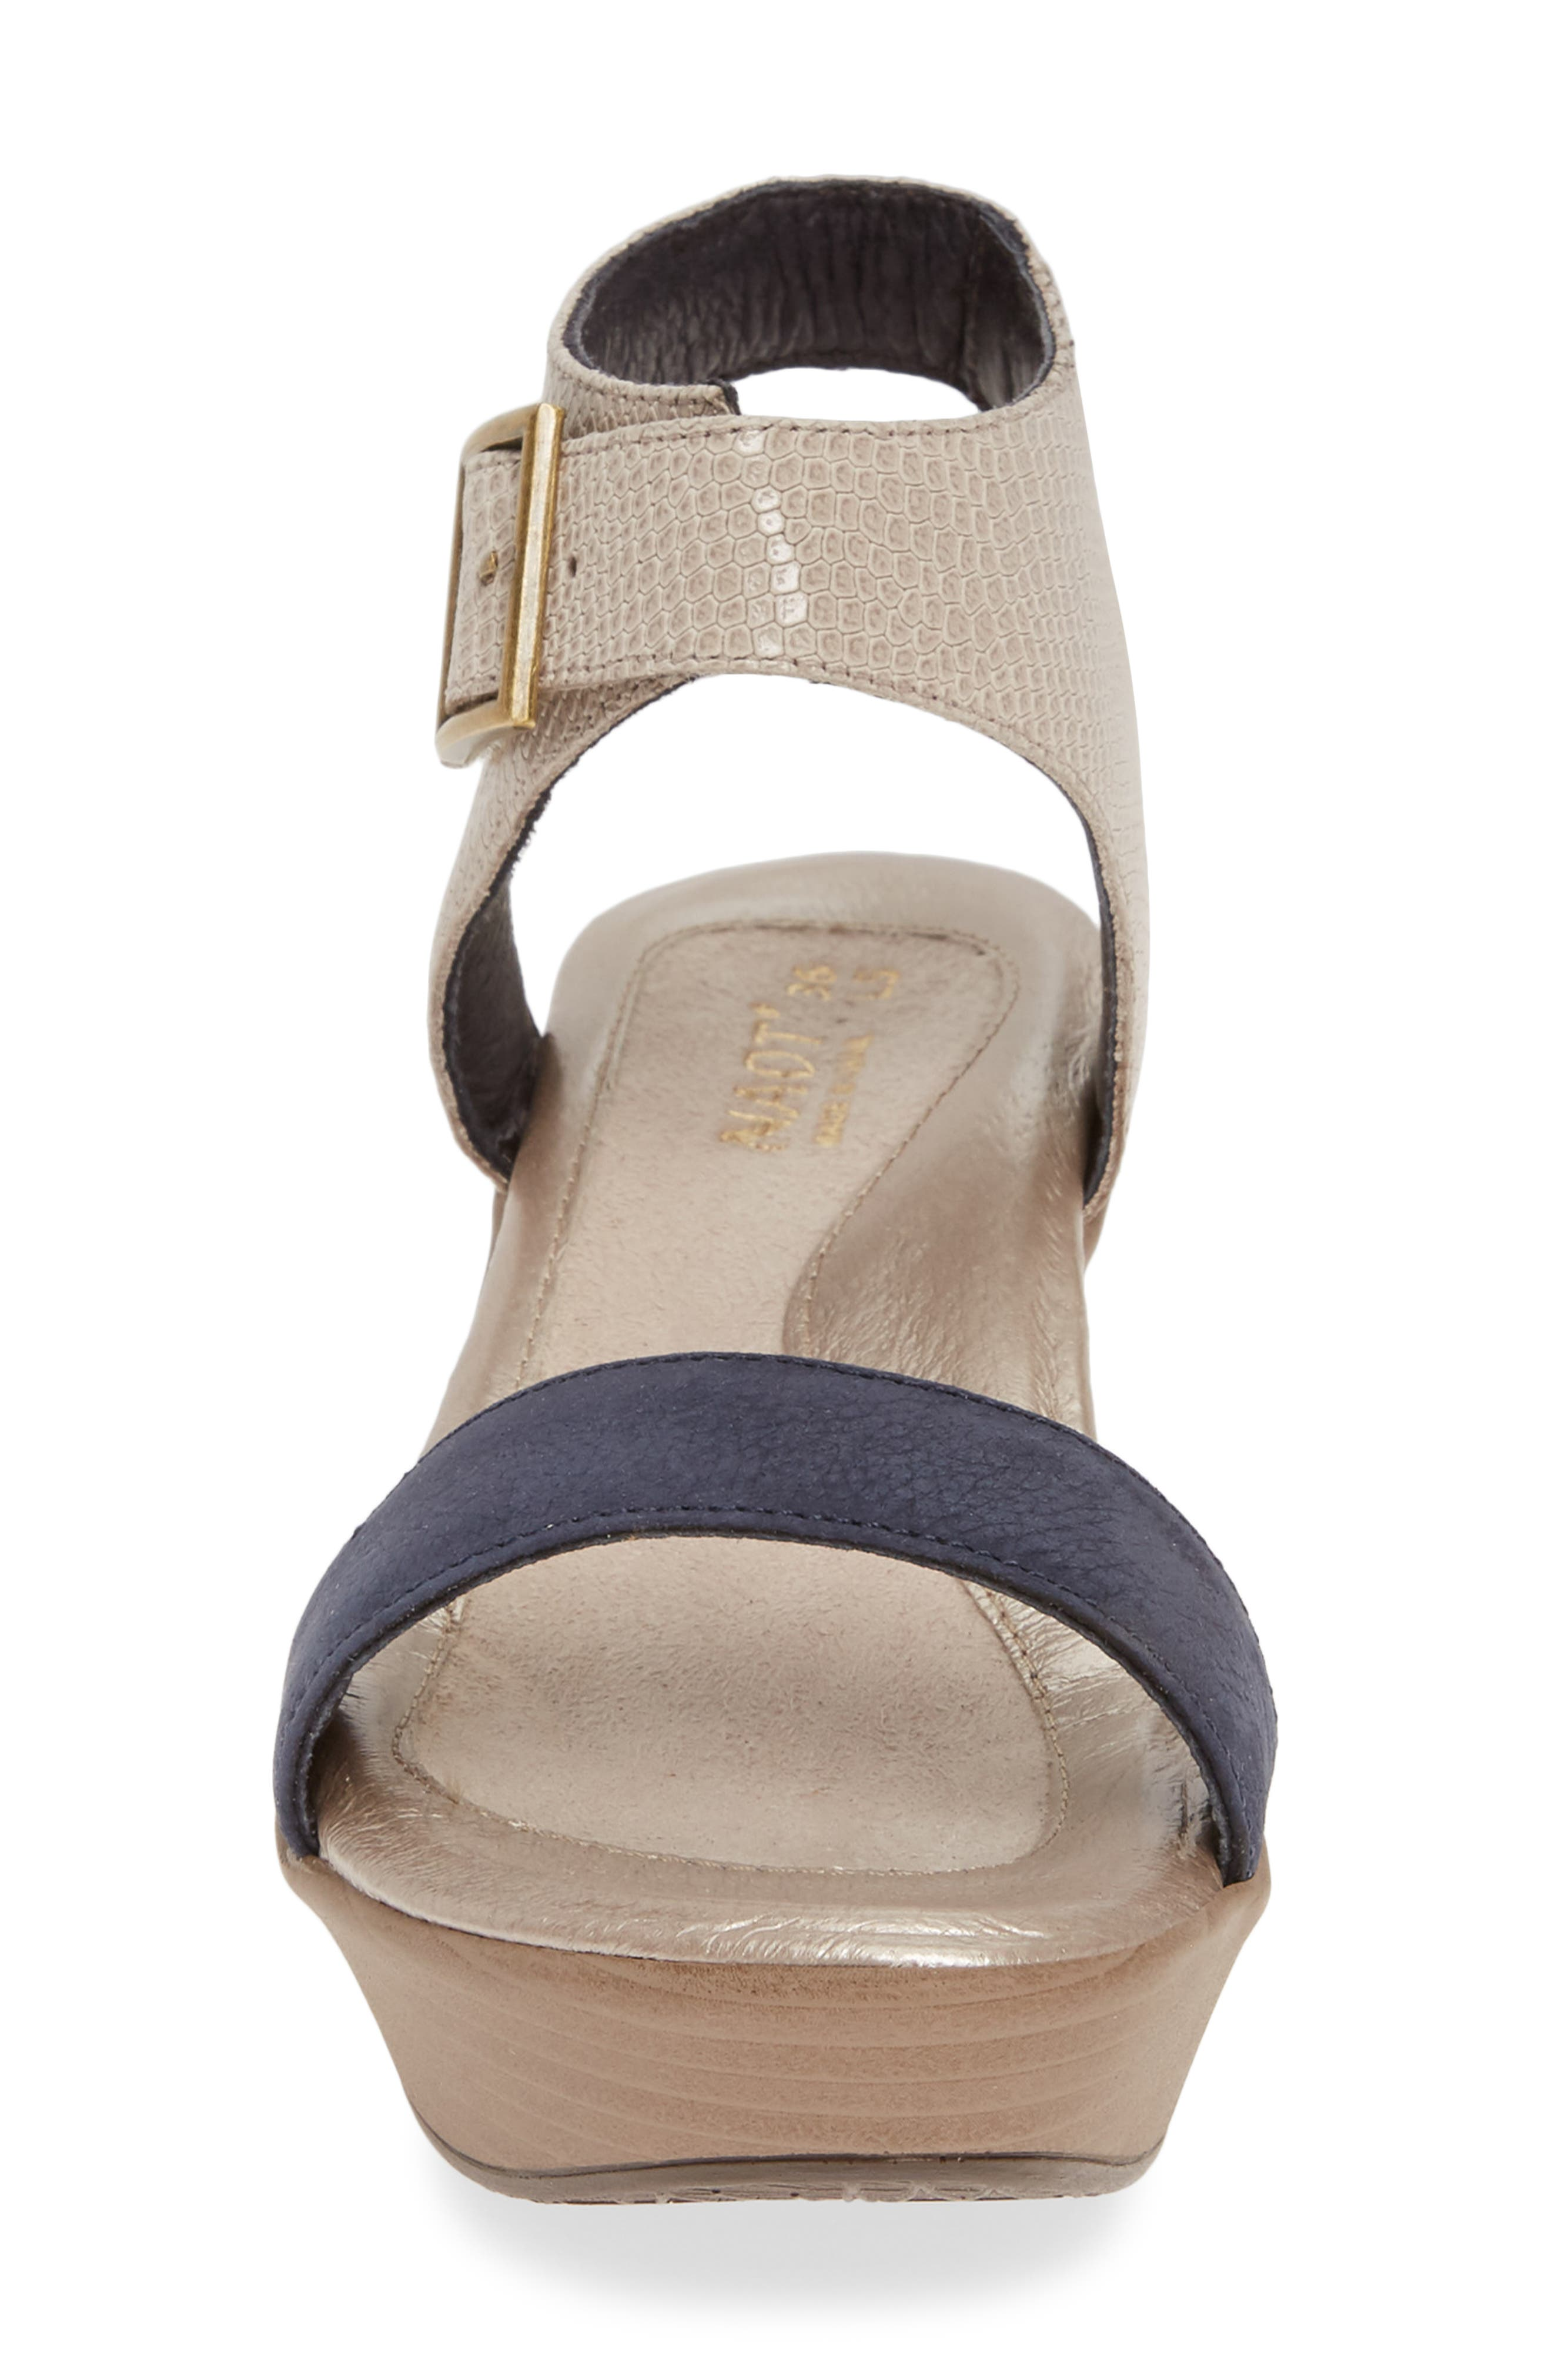 NAOT, Caprice Wedge Sandal, Alternate thumbnail 4, color, BEIGE LIZARD/ NAVY VELVET